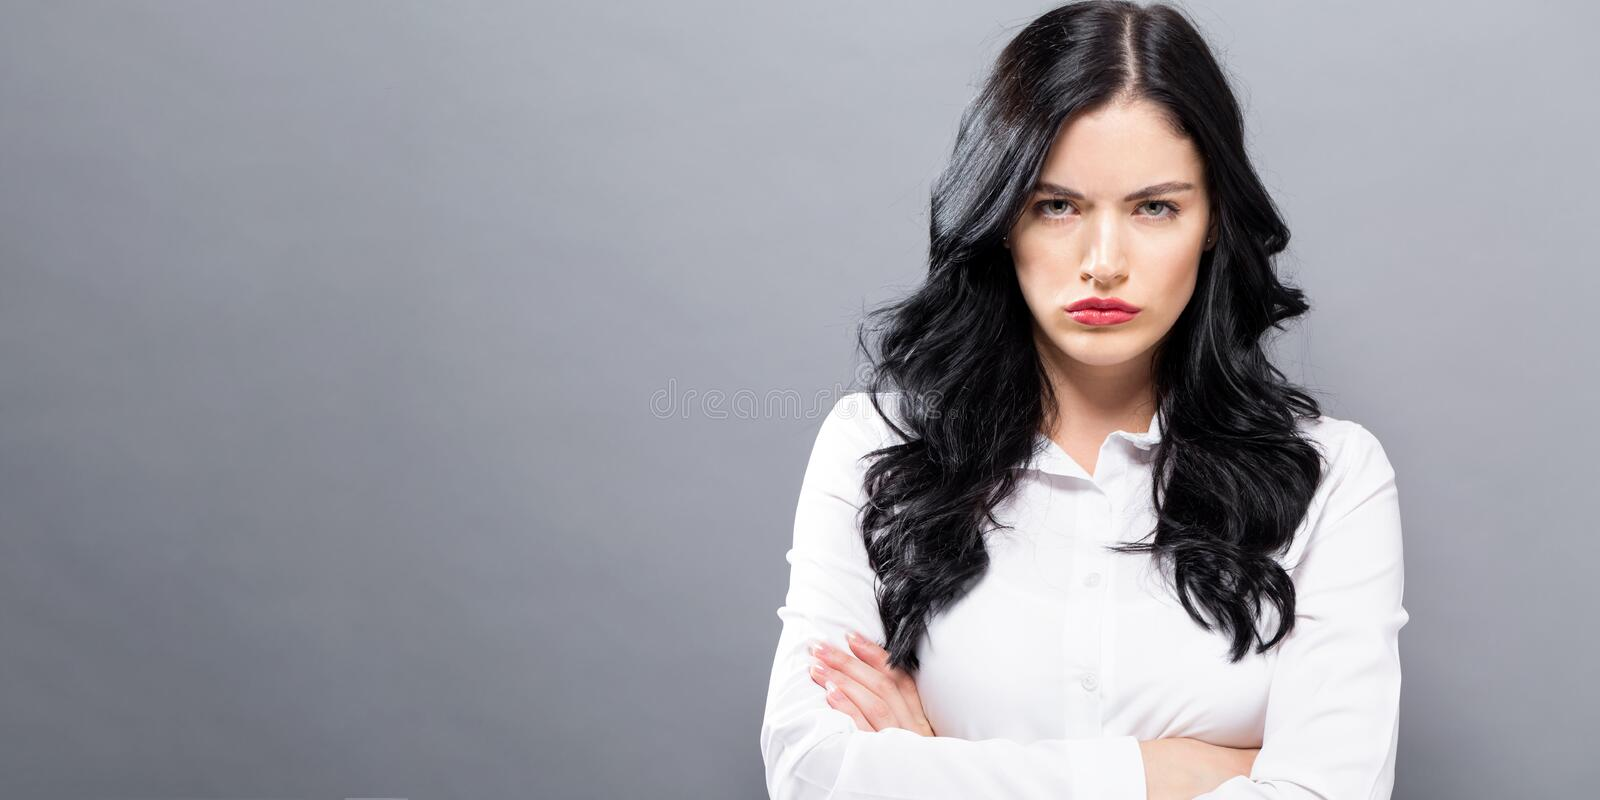 Unhappy young woman royalty free stock images